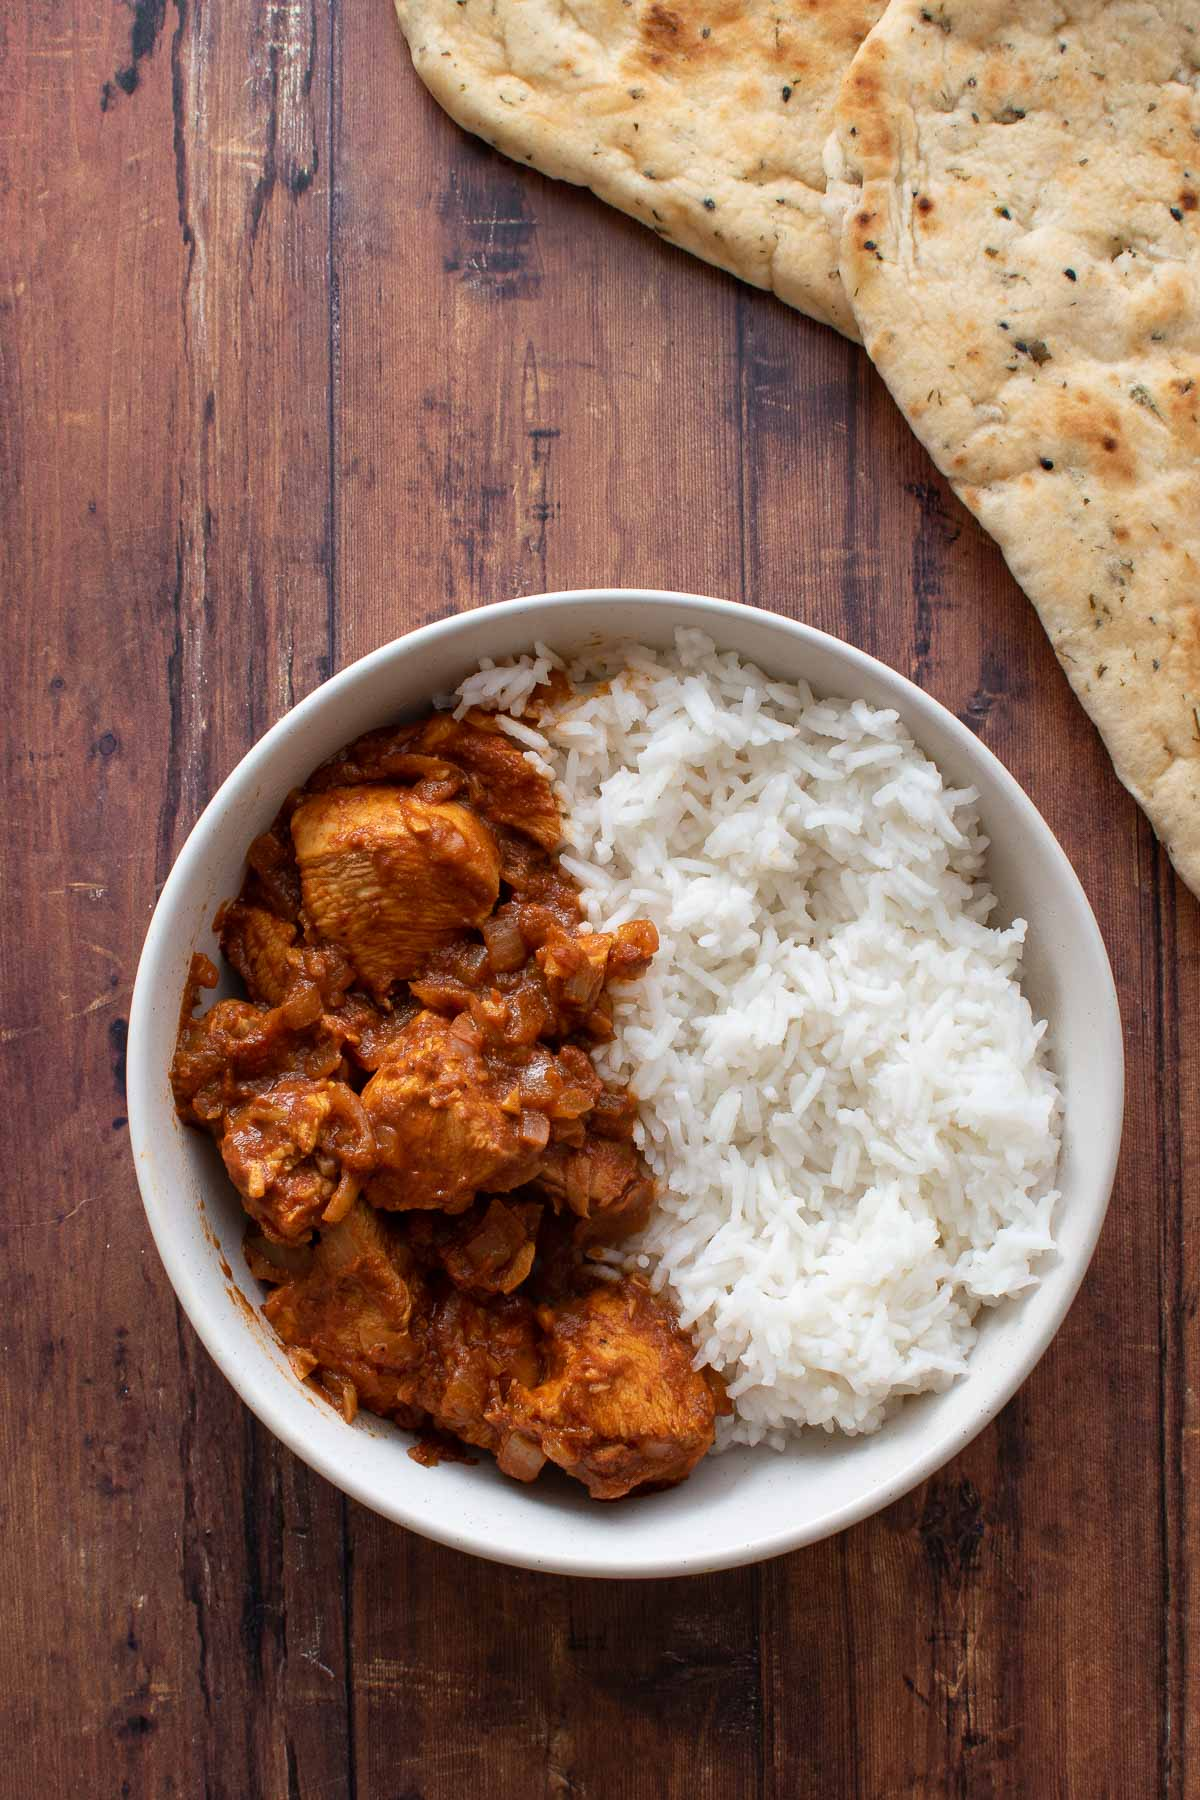 A bowl of chicken rogan josh curry with rice and naan on the side.